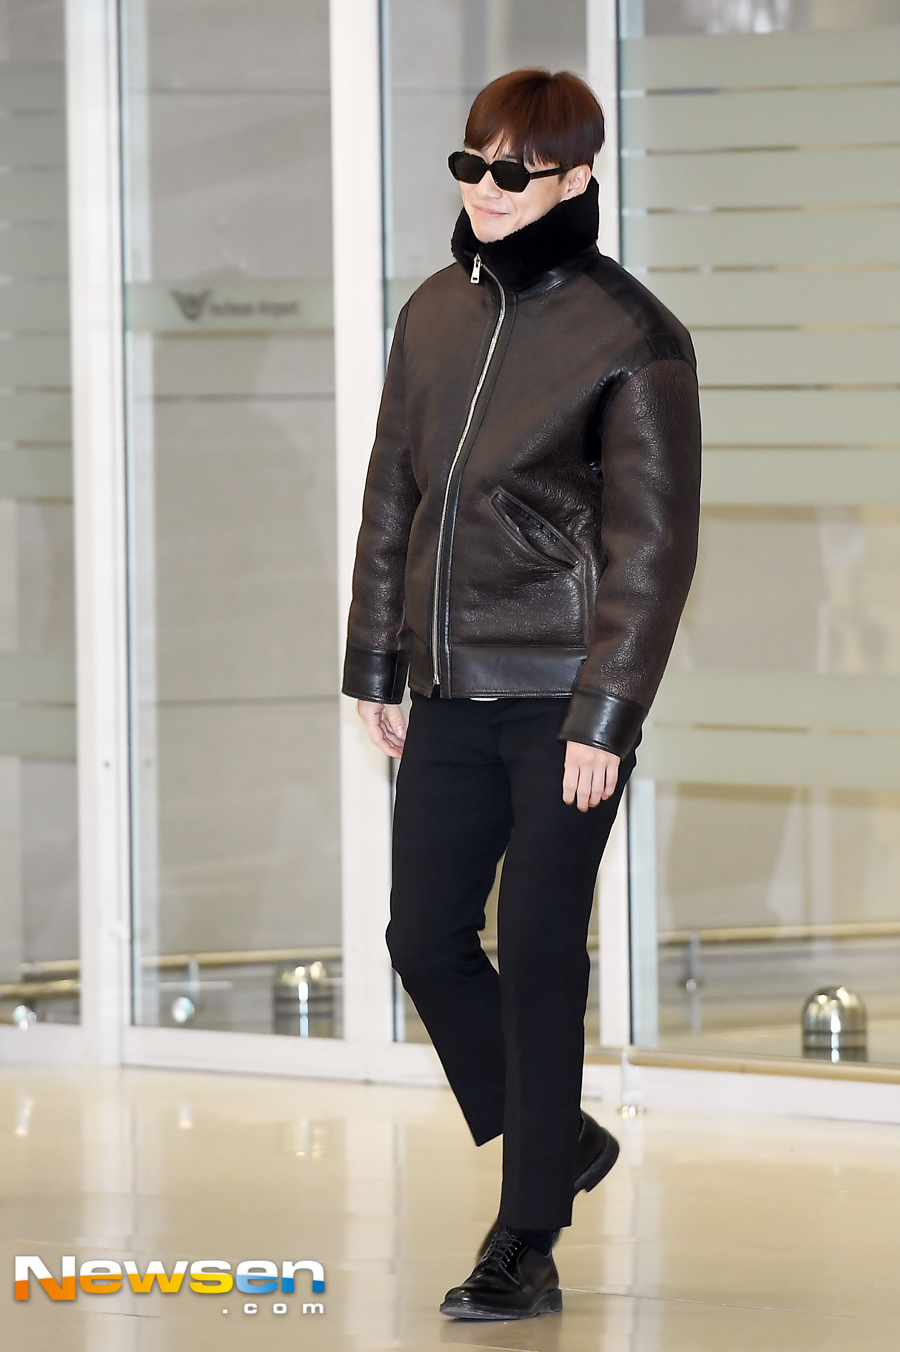 <p>Actor Park Seo-joon this photo shoot and 2 17, PM Incheon Jung-operation in Incheon International Airport through immigration.</p><p>This day, Park Seo-joon, this Arrival point on.</p><p>Meanwhile Park Seo-joon is the year the movie Lion(Director Kim Joo Hwan) the opening ahead. Lionis the father to a lost wound a fighting champion 'the Dragon'(Park Seo-joon)the priests 'inner you'(Ahn Sung-ki)to meet the world of a powerful evil(惡)to fit in, its.</p>